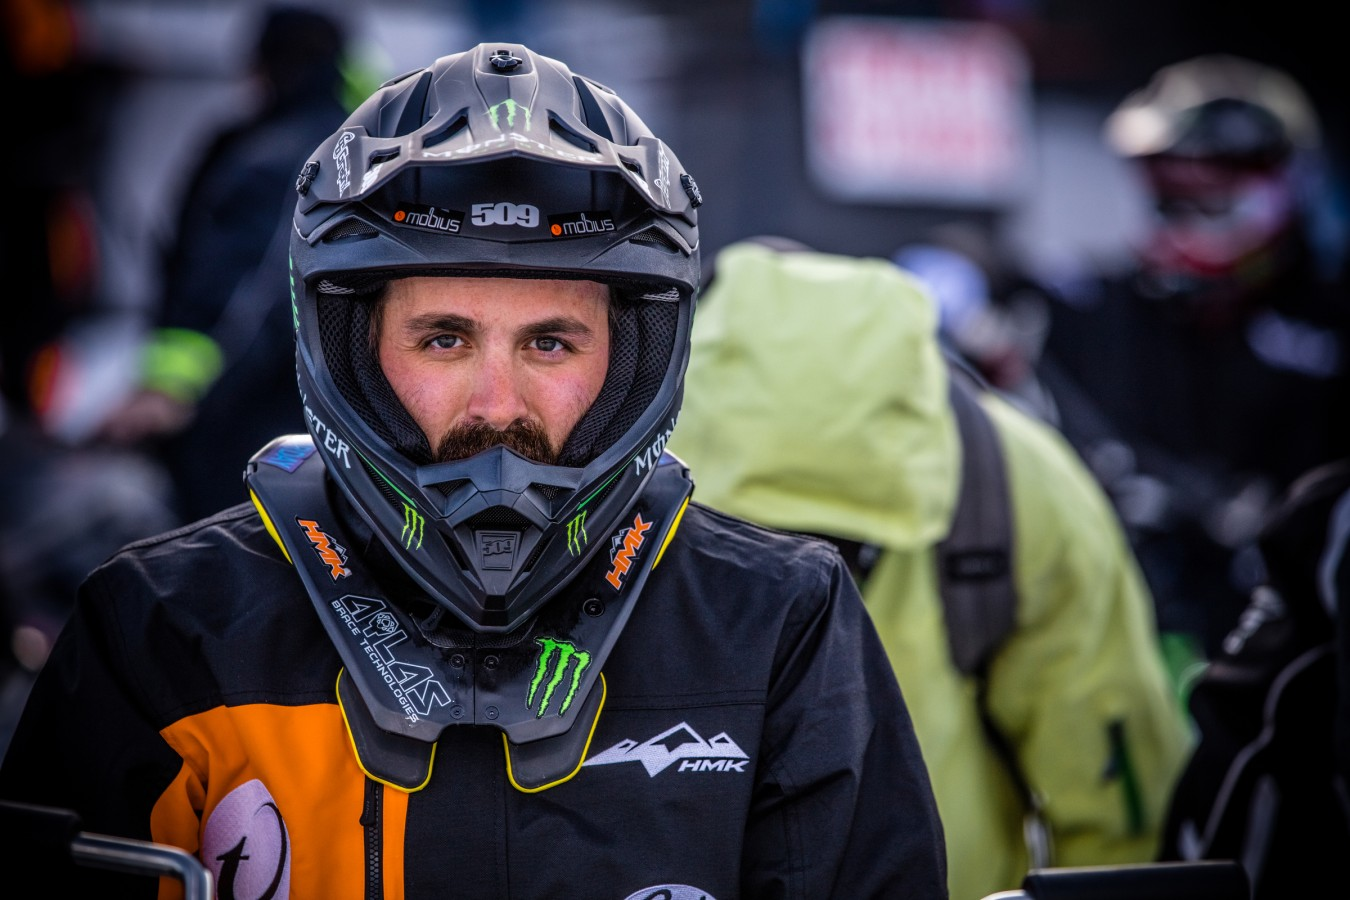 Brett Turcotte competes at Winter X Games 2016